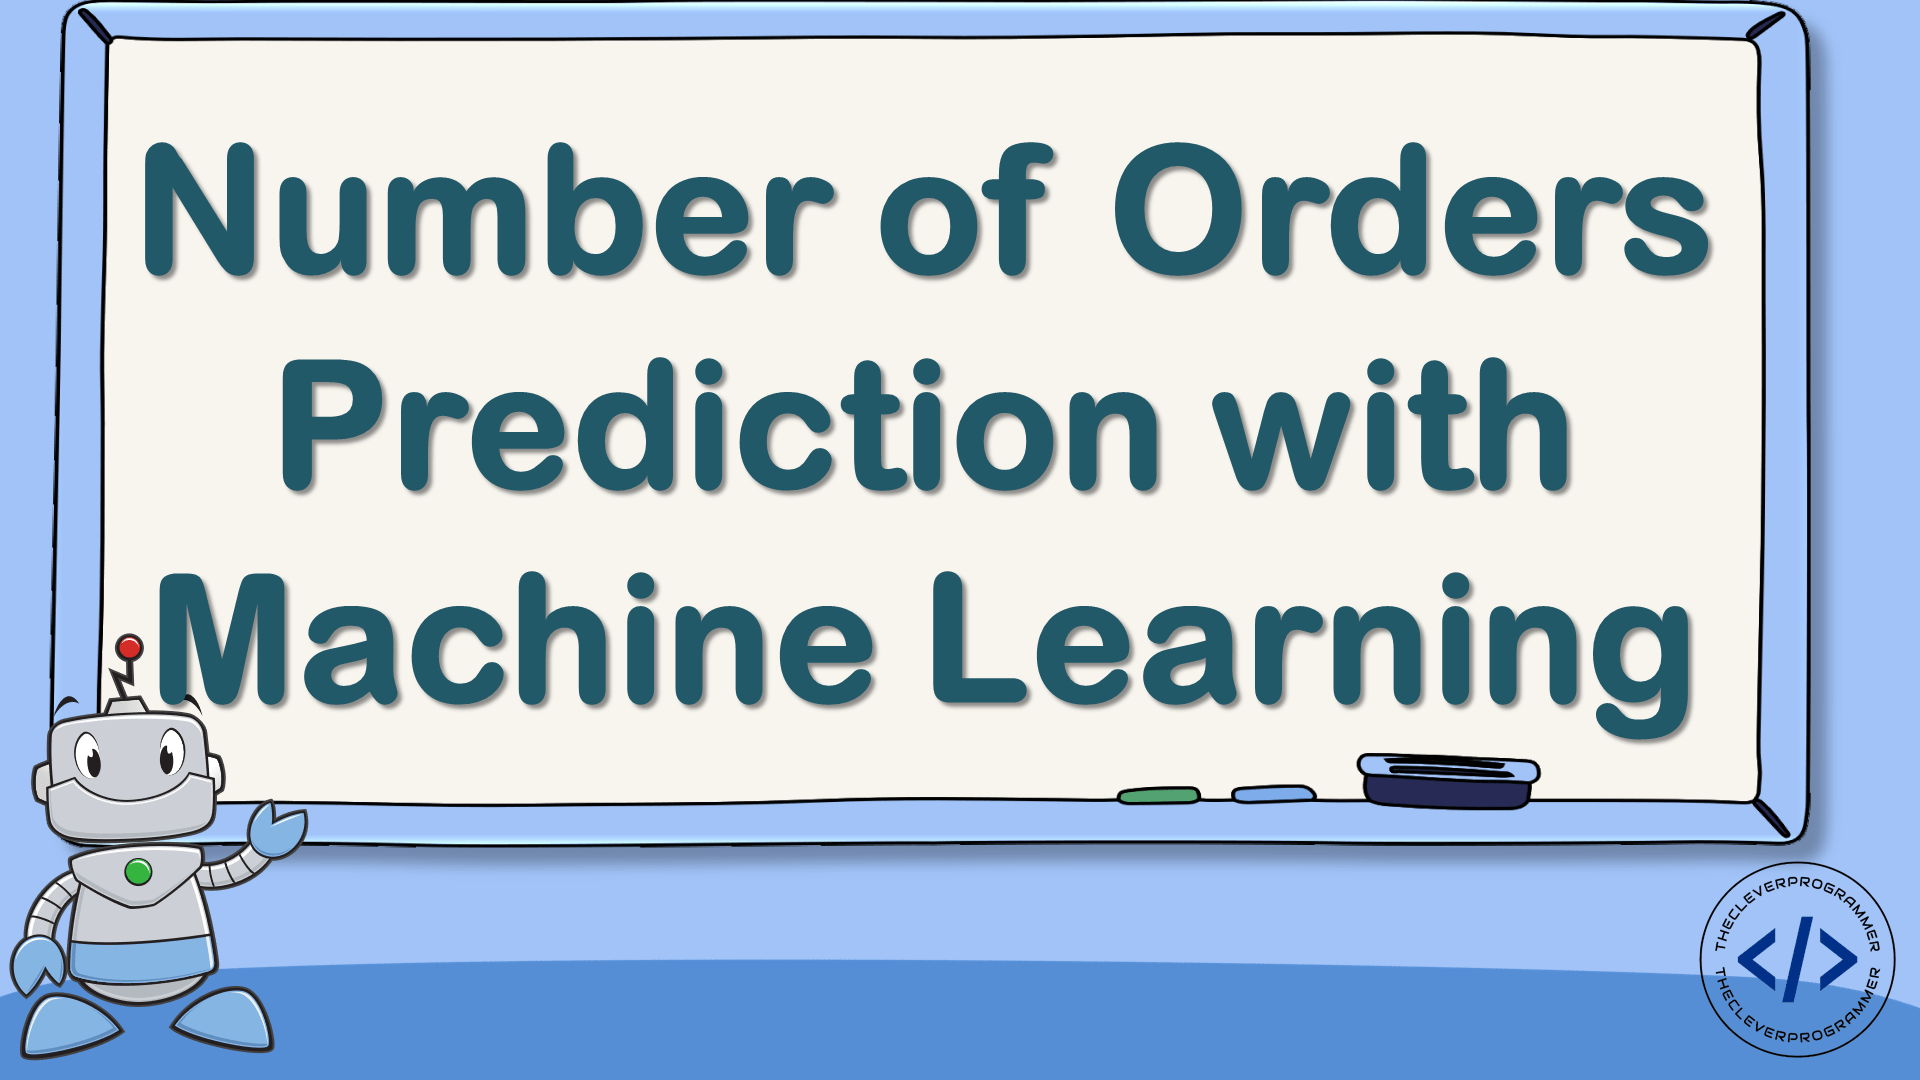 Number of Orders Prediction with Machine Learning